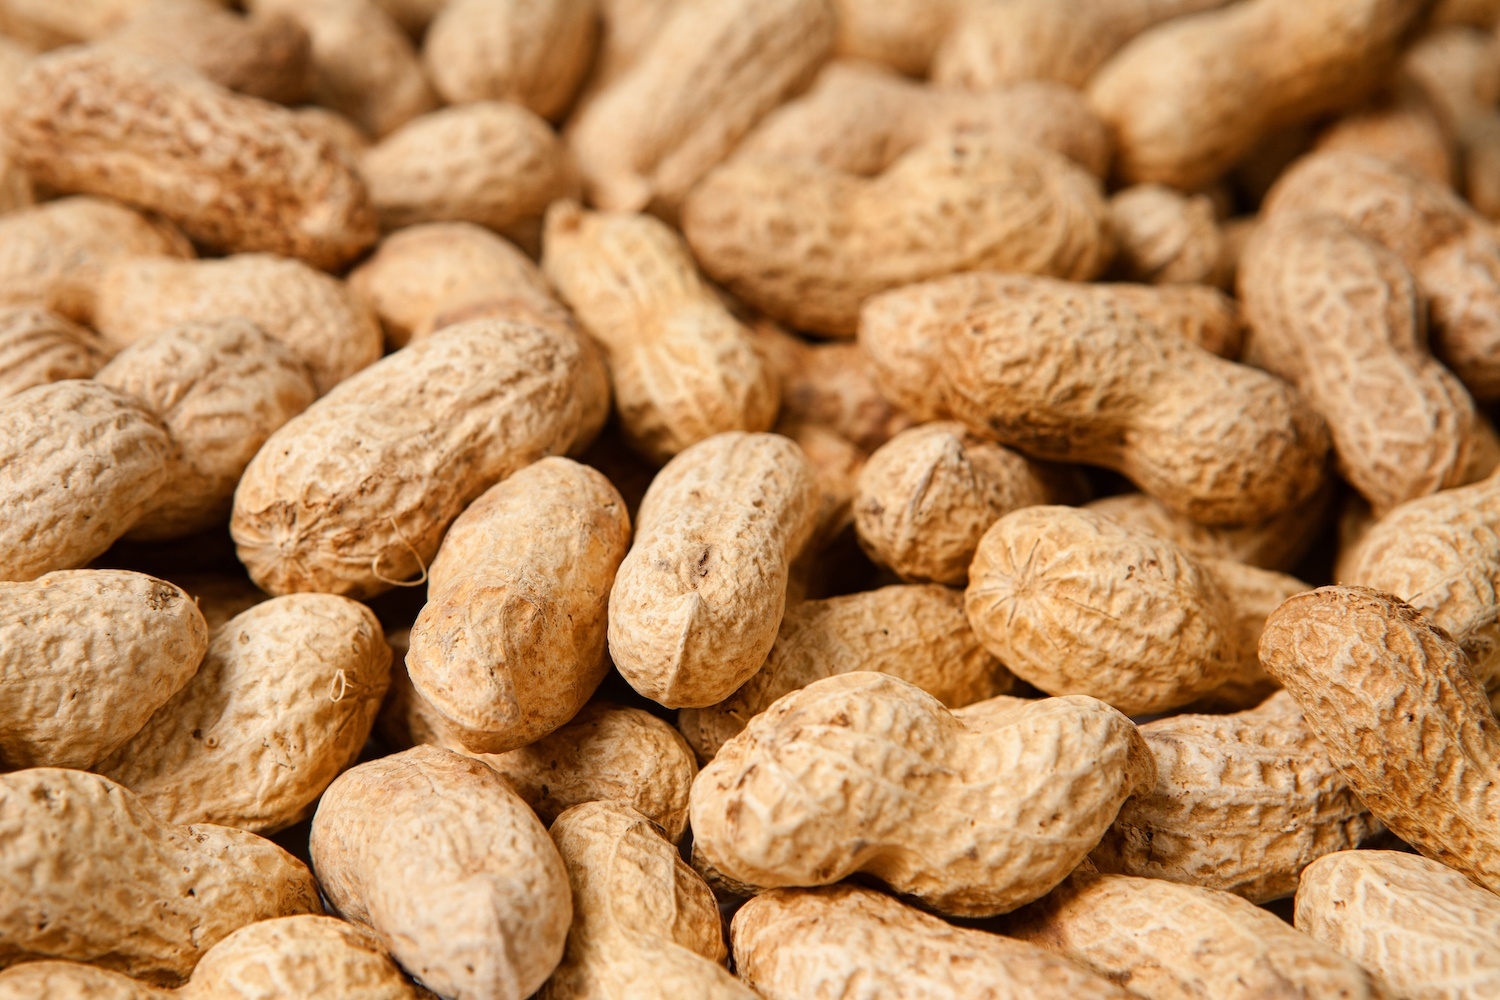 Heaps of peanuts close-up shot. December 2020